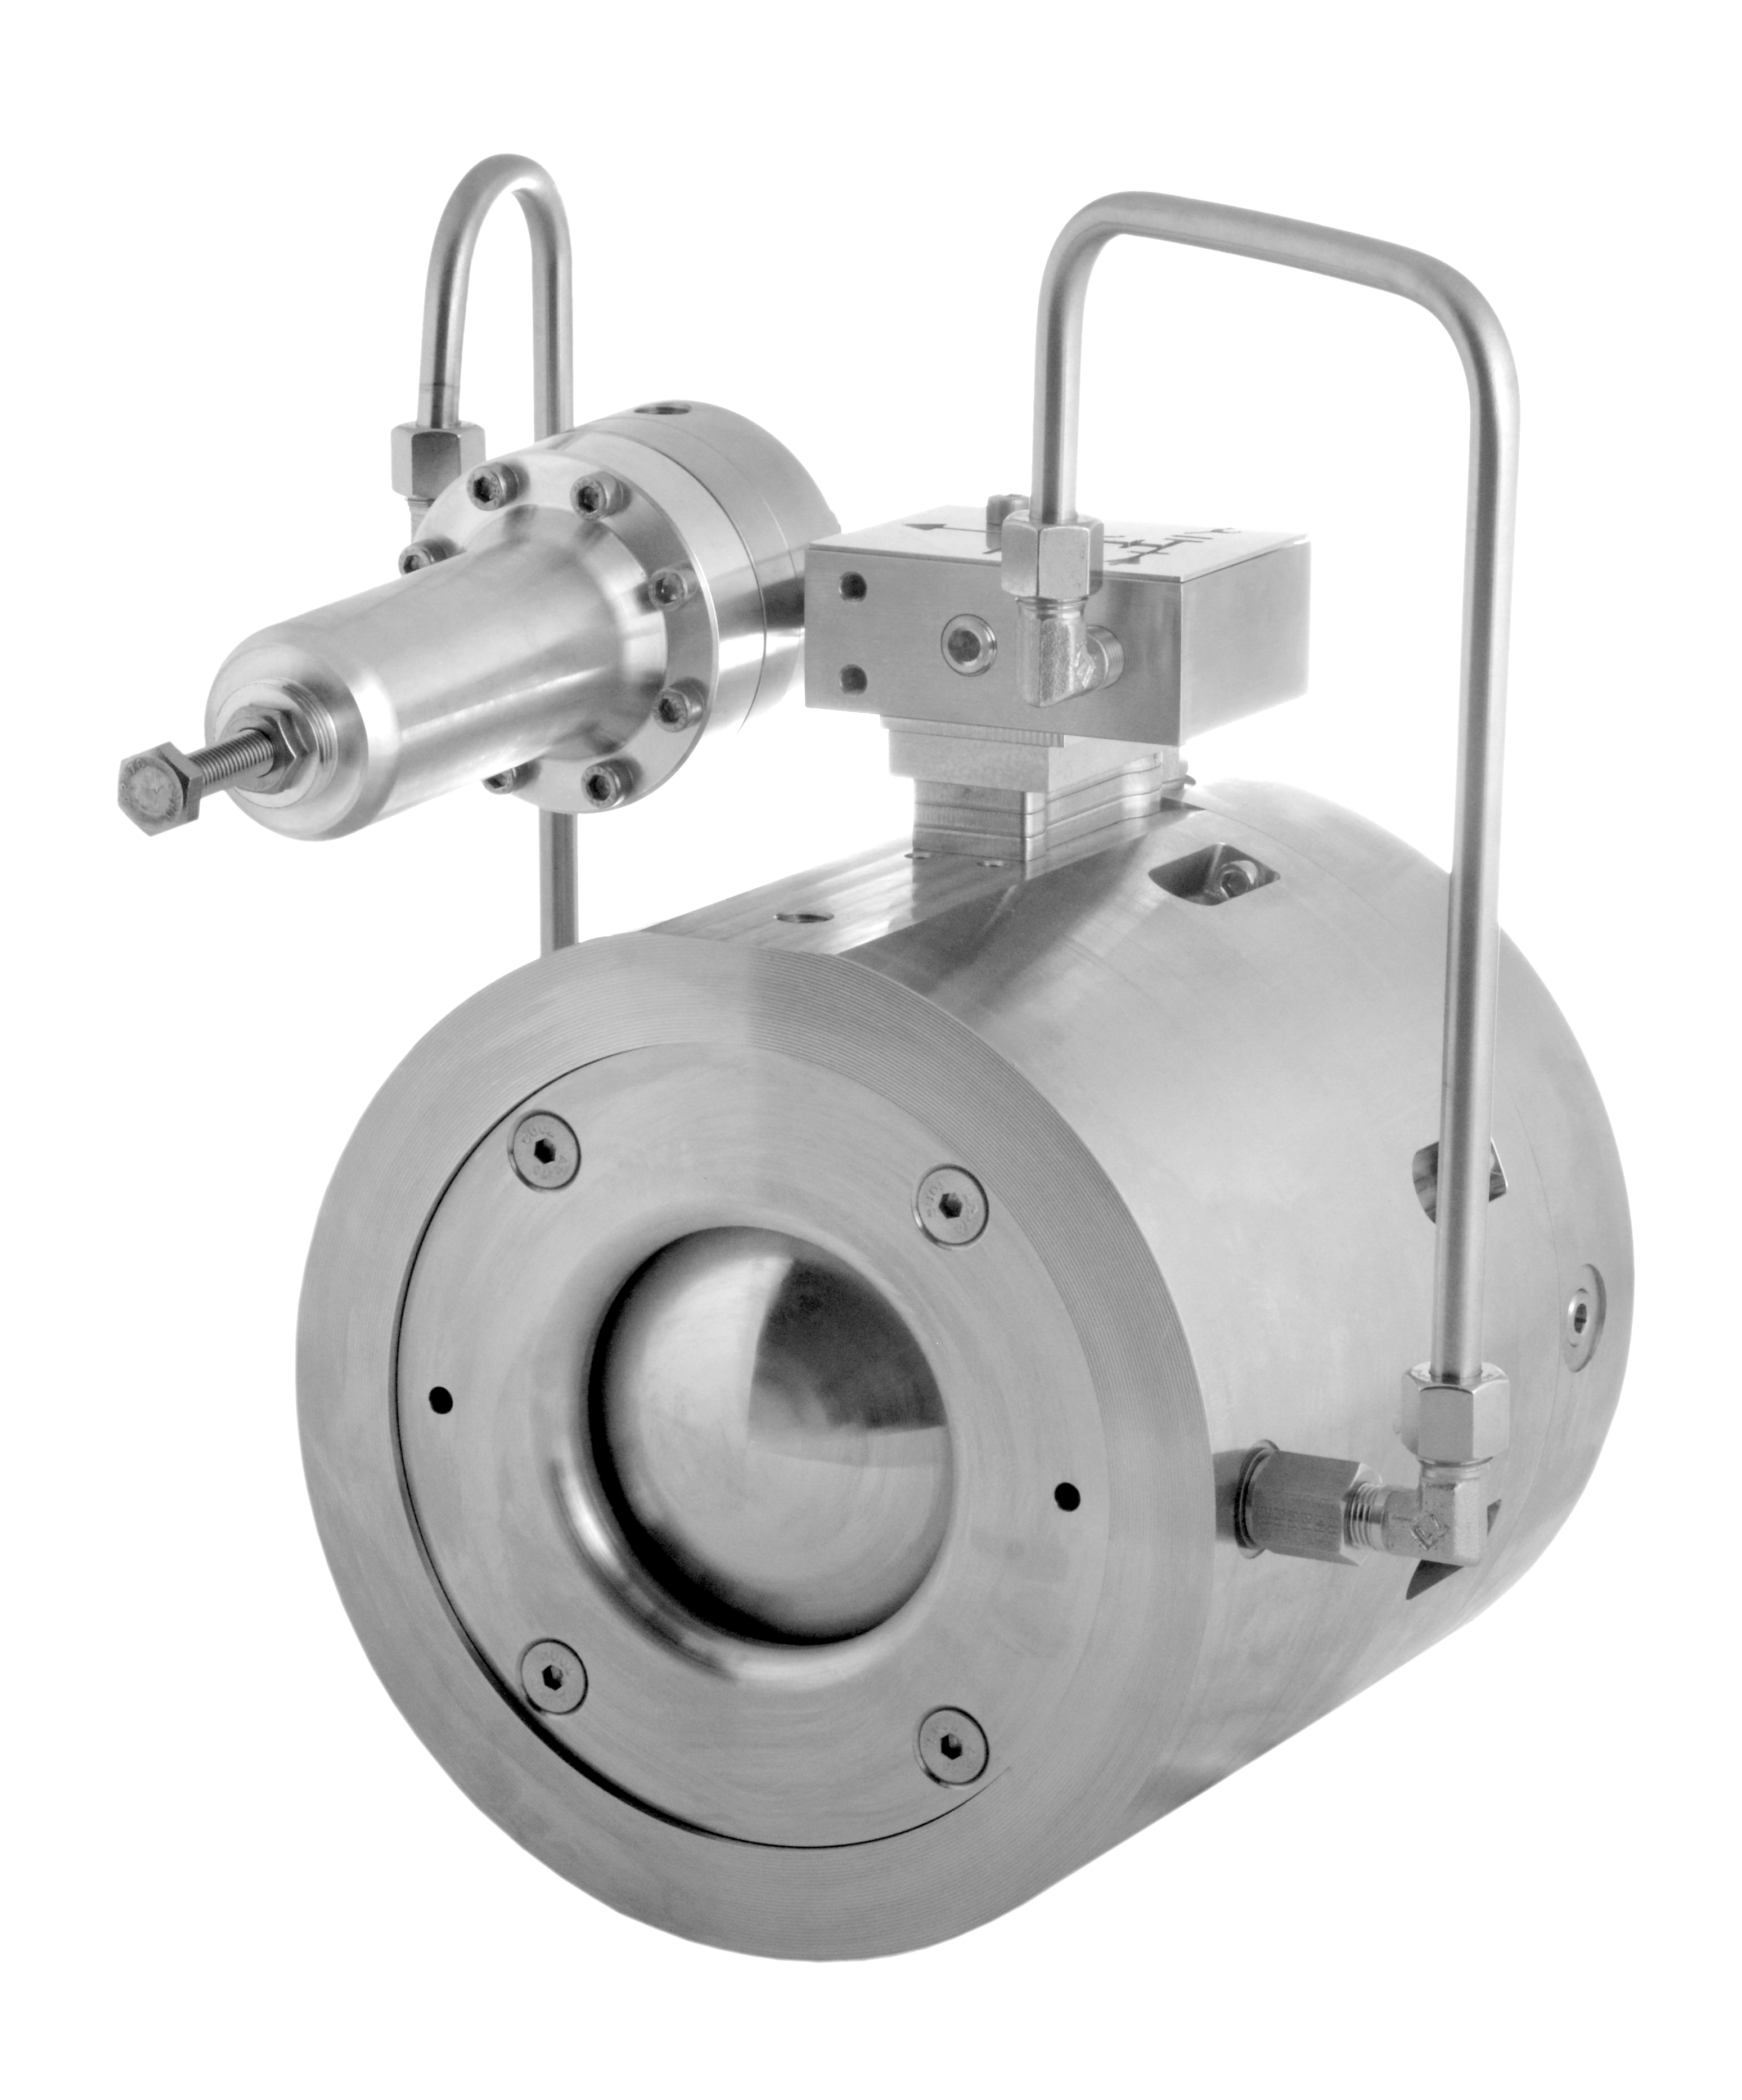 The IM gas regulator valve increases reliability and reduces costs for operators in the gas distribution, power generation, industrial gases, and oil and gas sectors. (Source: Oxford Flow)